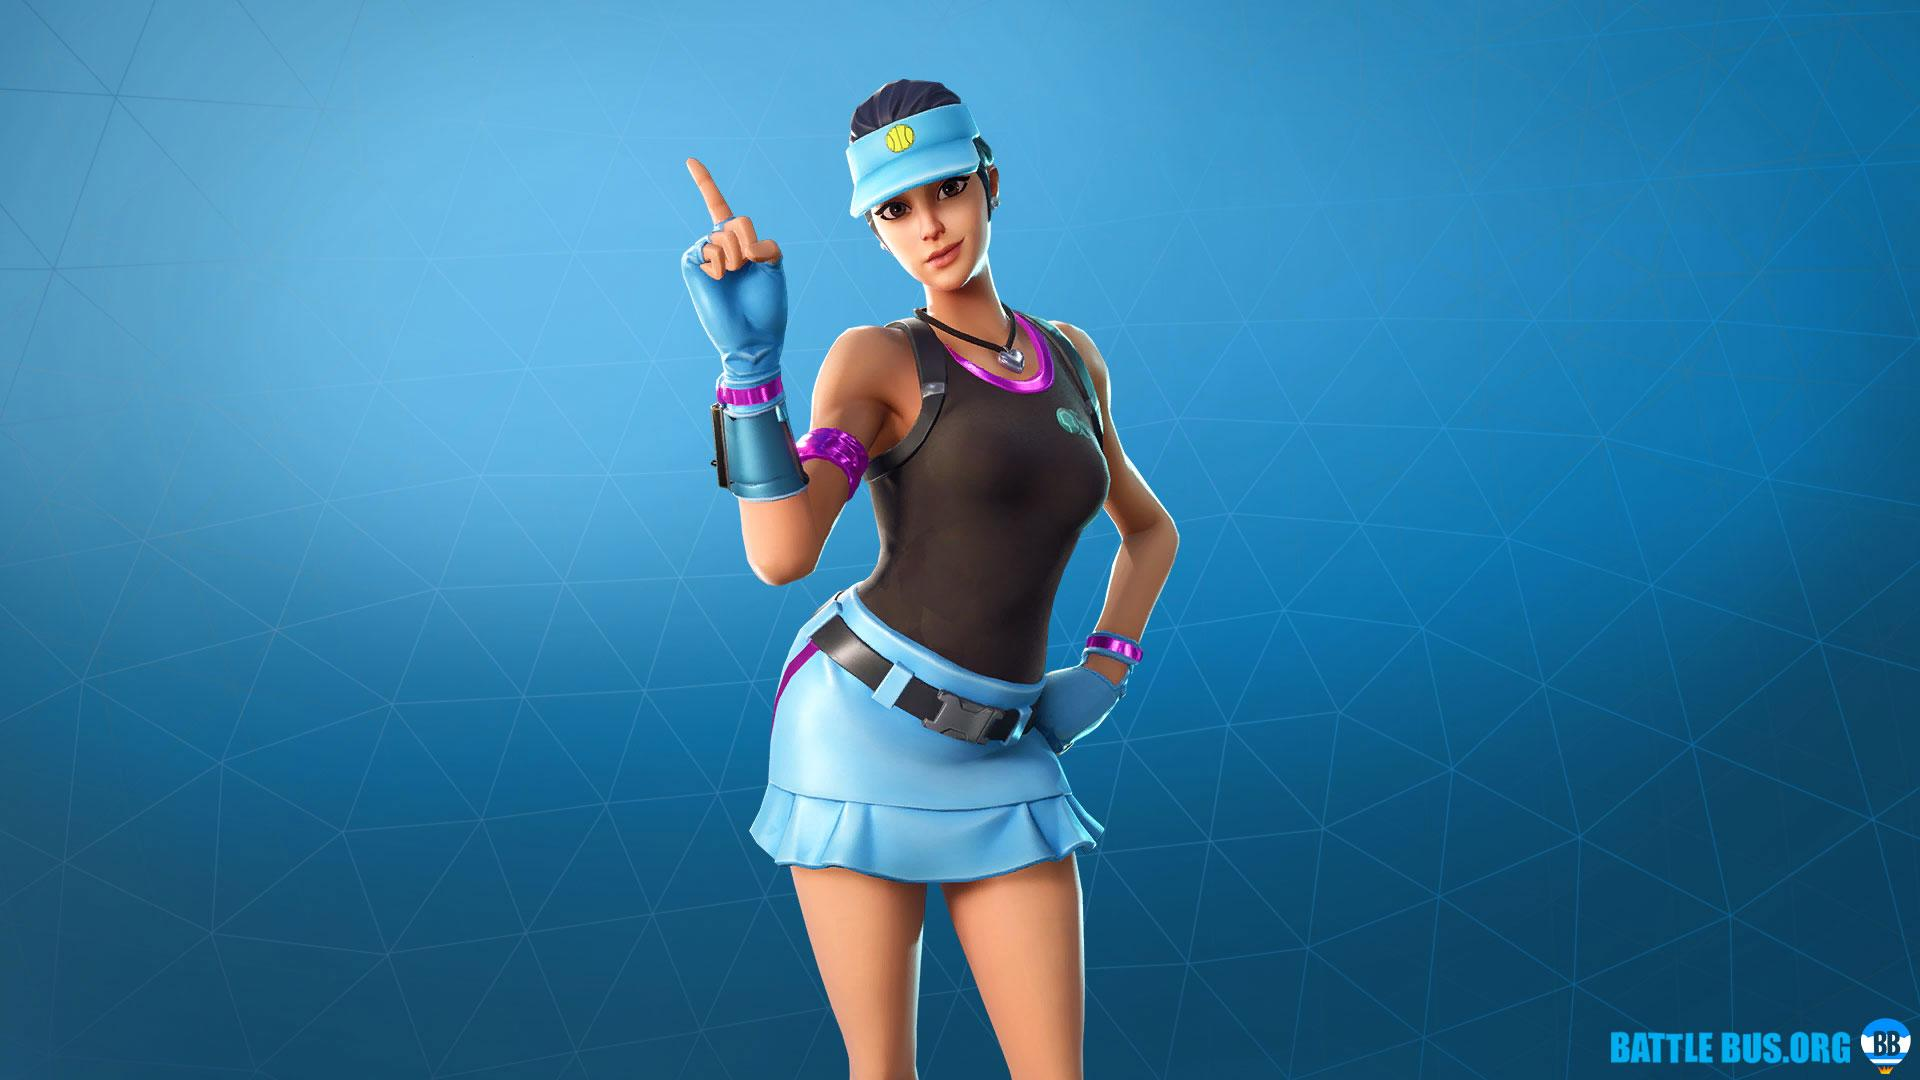 Volley Girl outfit - Volley girl Set, Fortnite skins, info, HD images